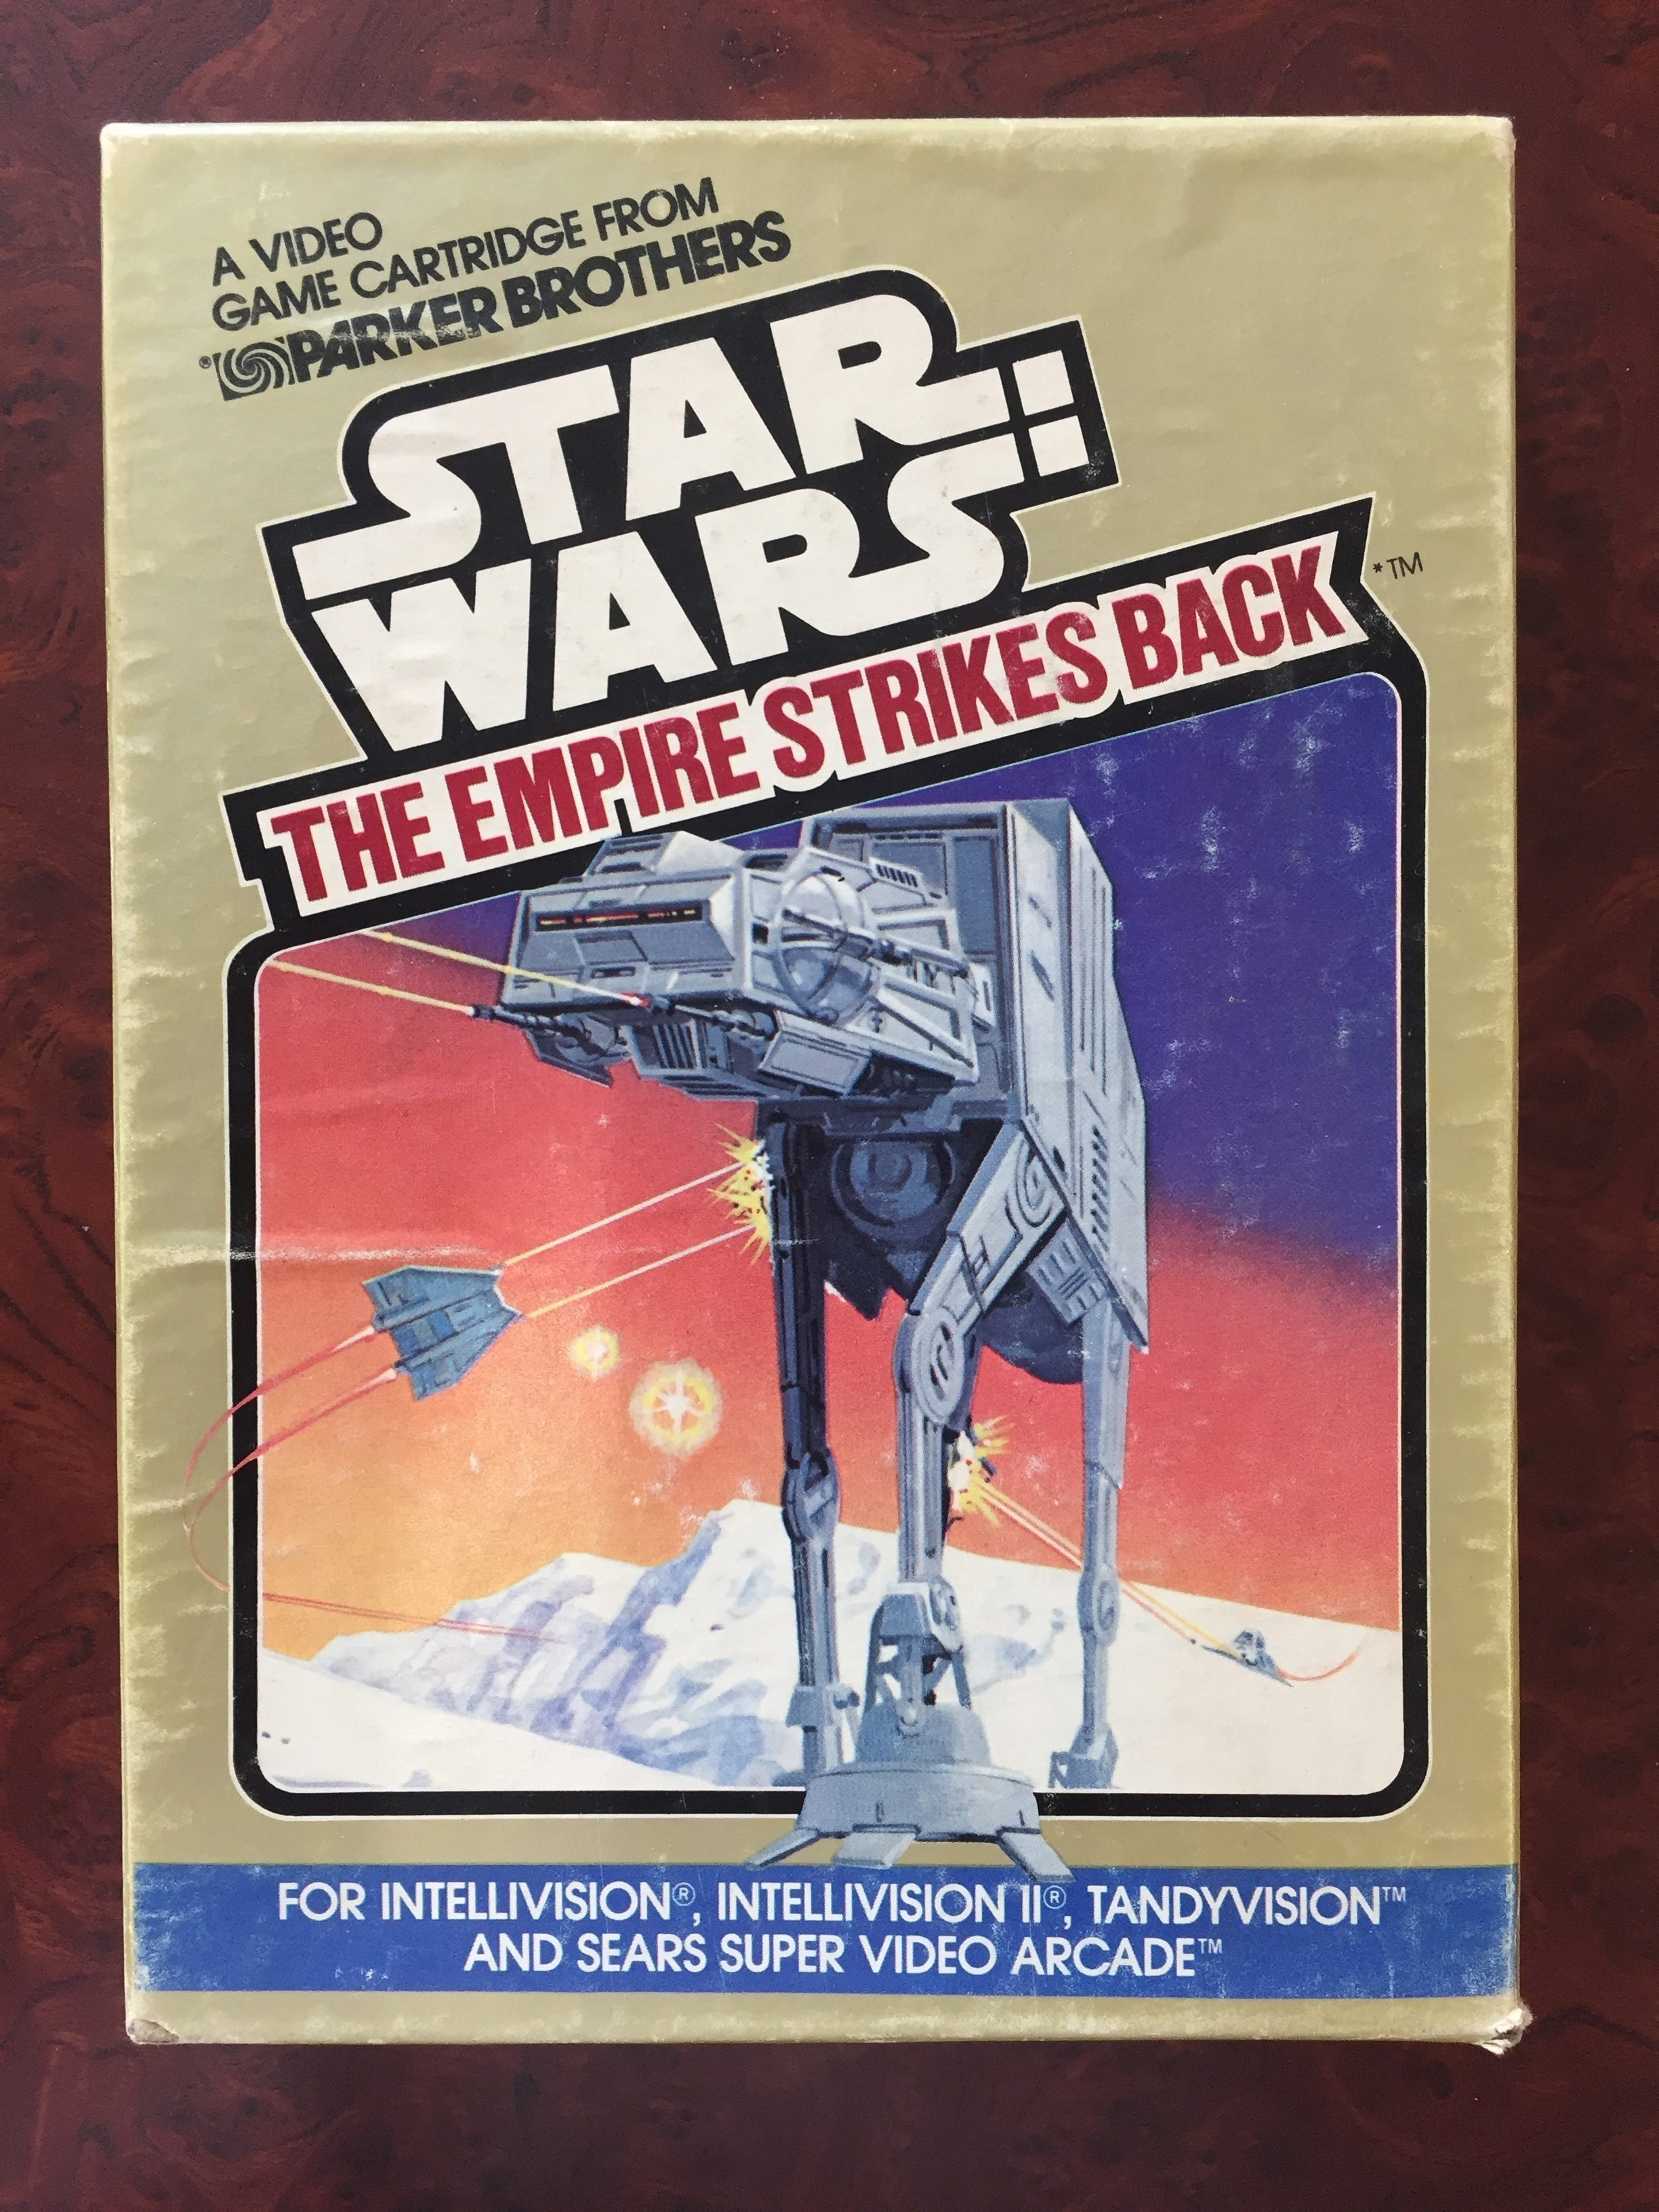 Star Wars ESB video game by Parker Brothers - Fonts In Use